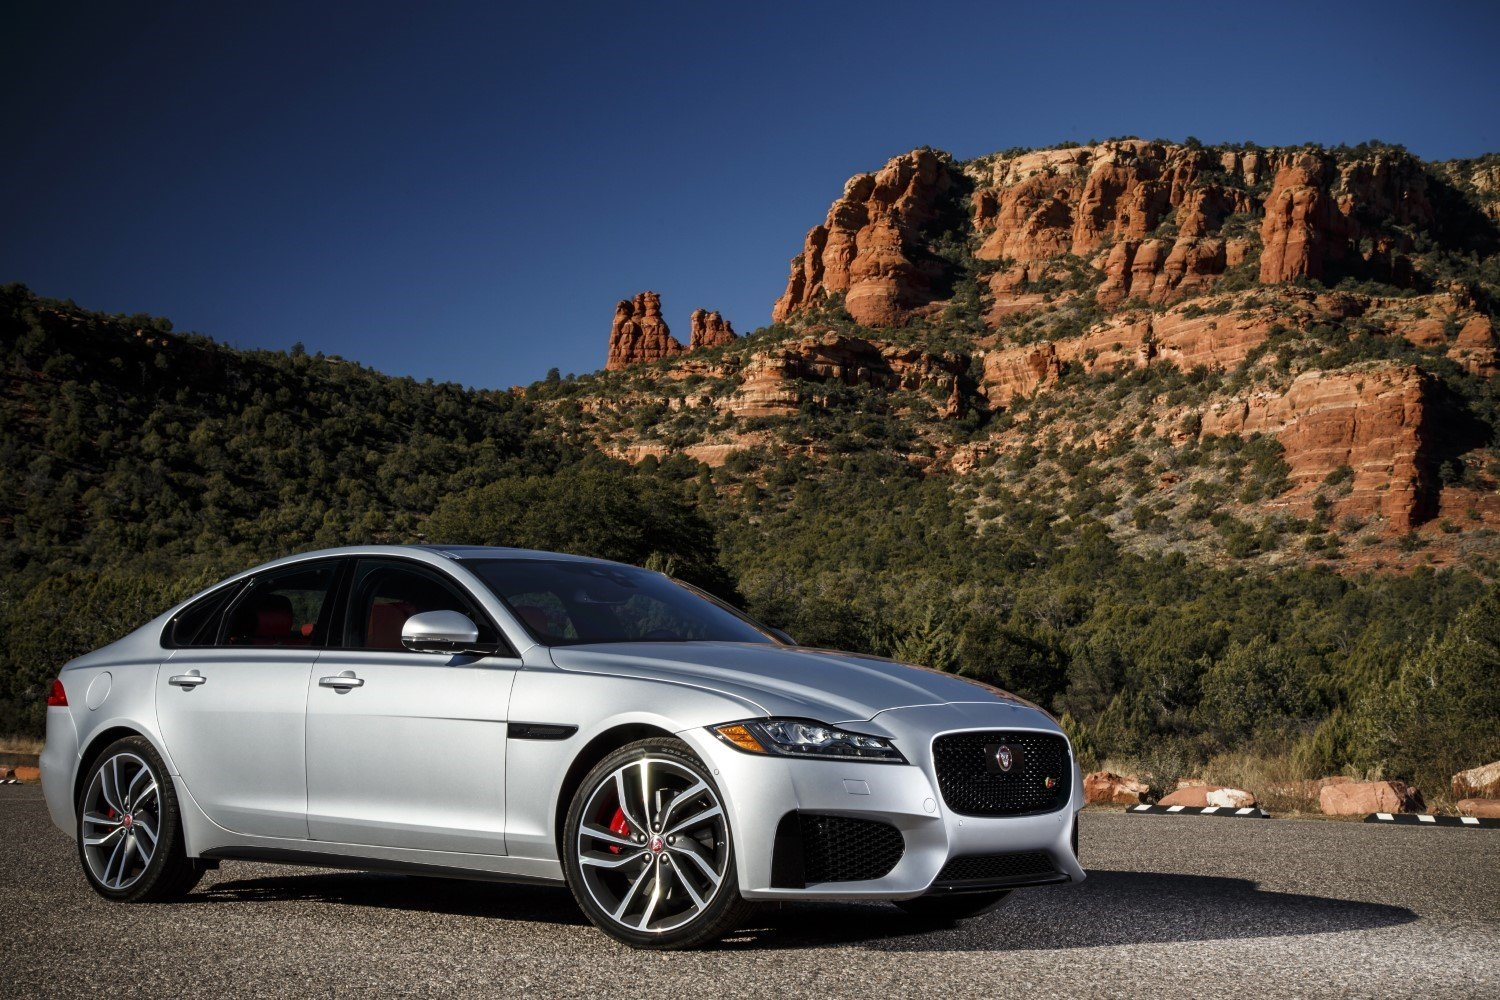 2018 Jaguar XF Sedan Specs, Review, and Pricing | CarSession